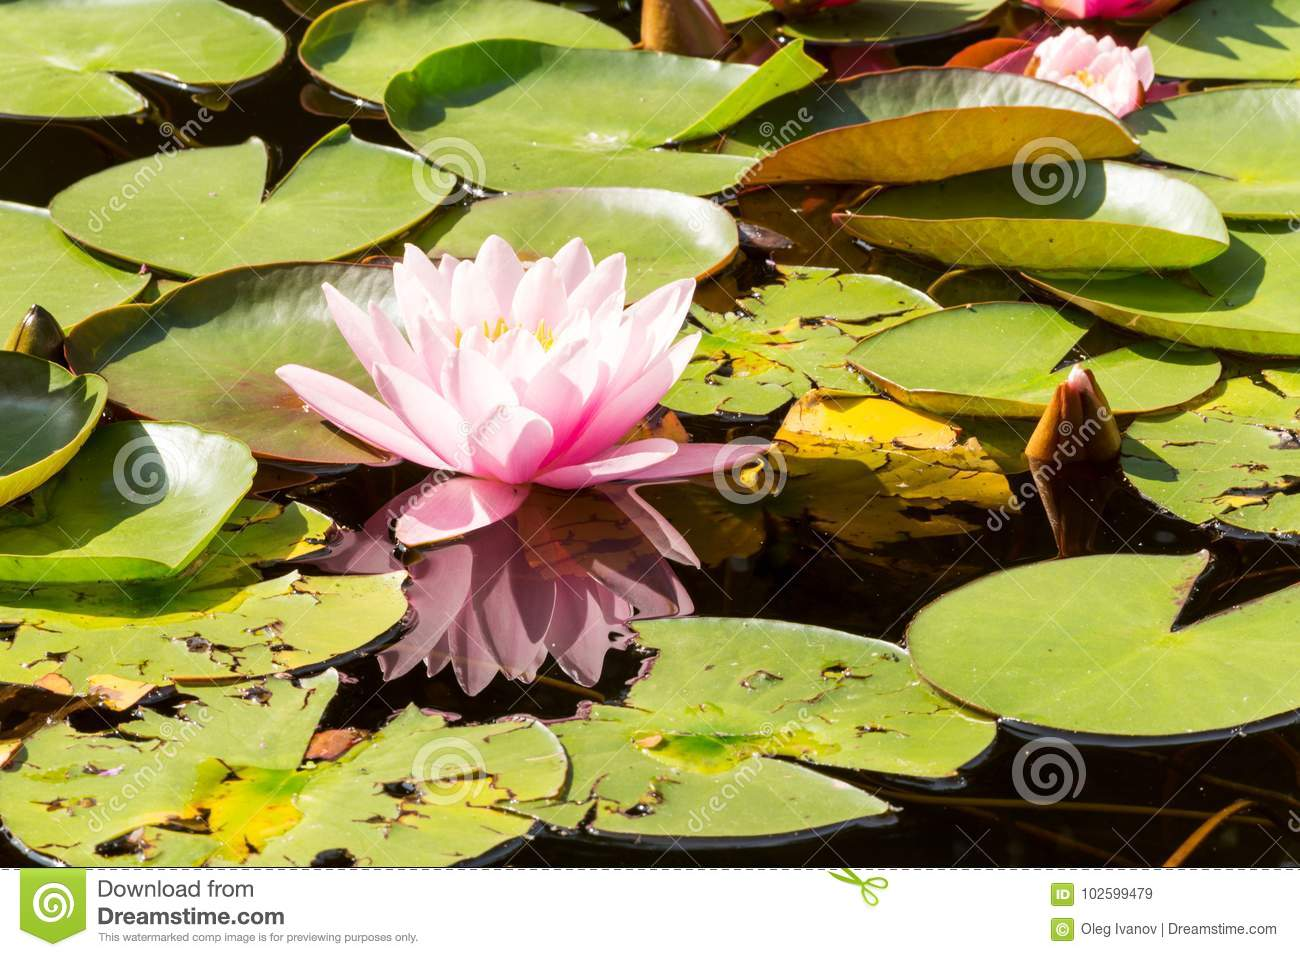 The Beautiful Pink Lotus Flowers Or Water Lilies In The Pond On